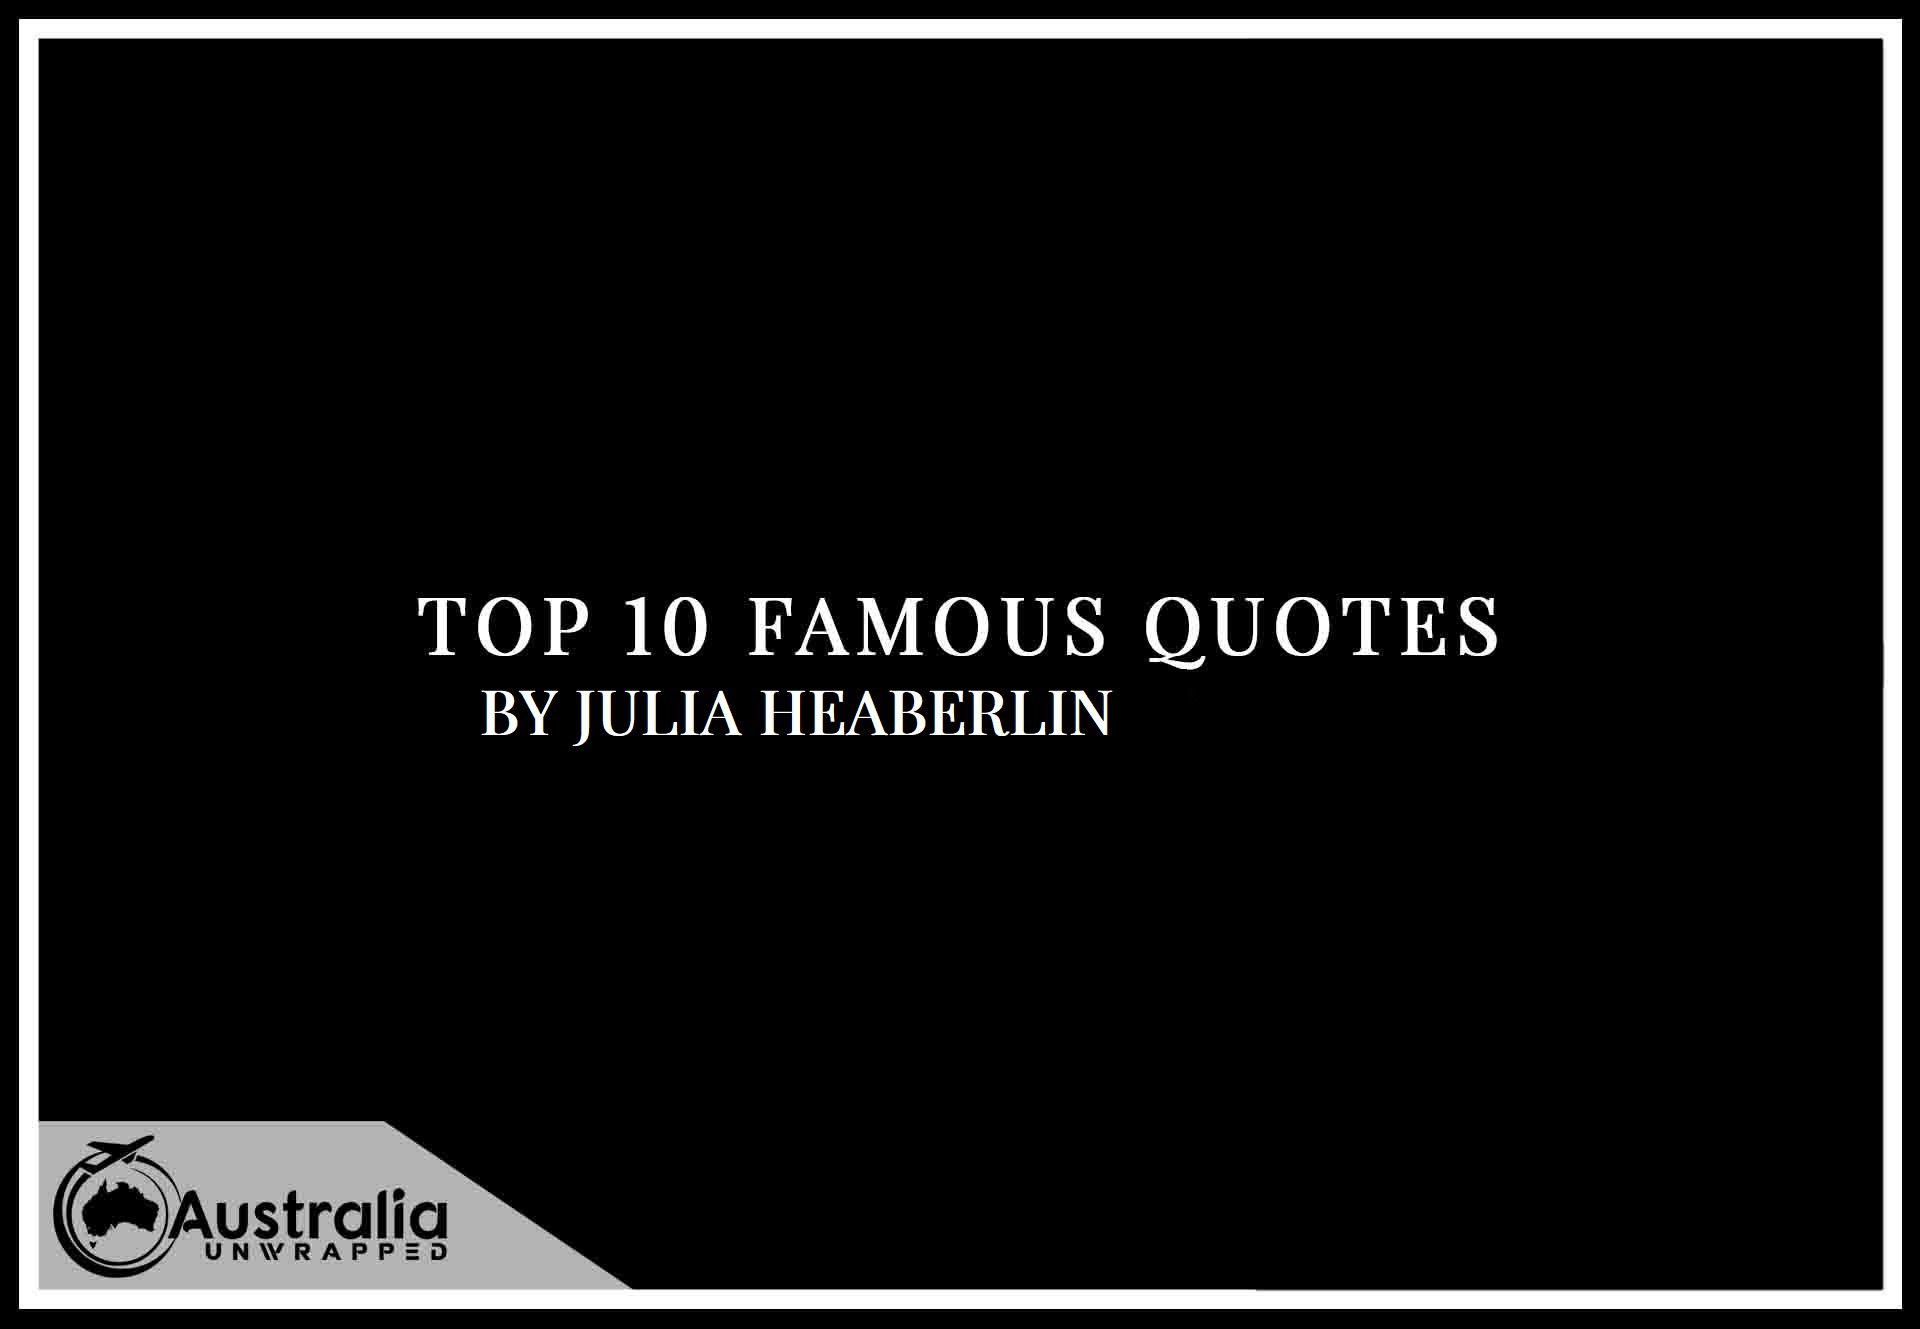 Top 10 Famous Quotes by Author Julia Heaberlin